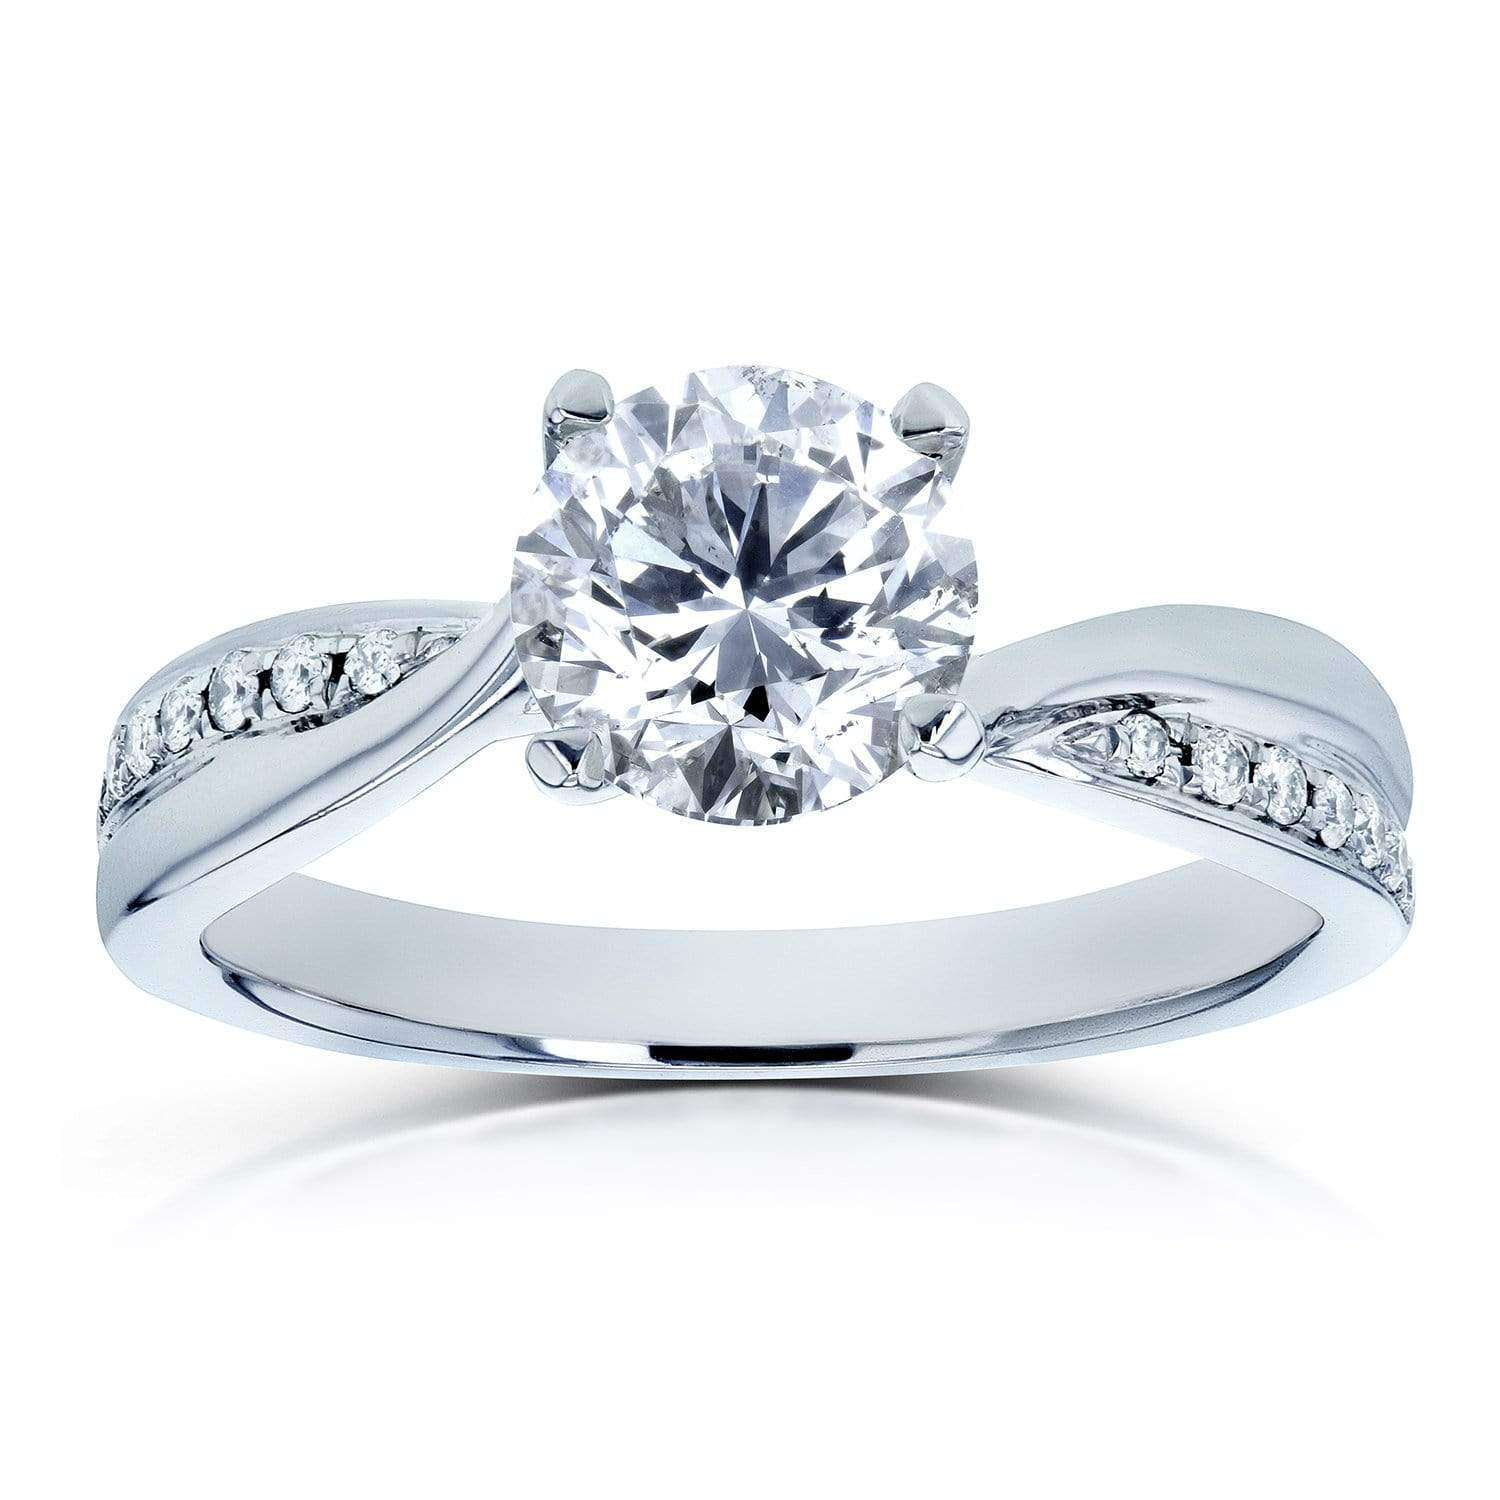 Compare Diamond Engagement Ring 1 CTW in 14k White Gold - 9.5